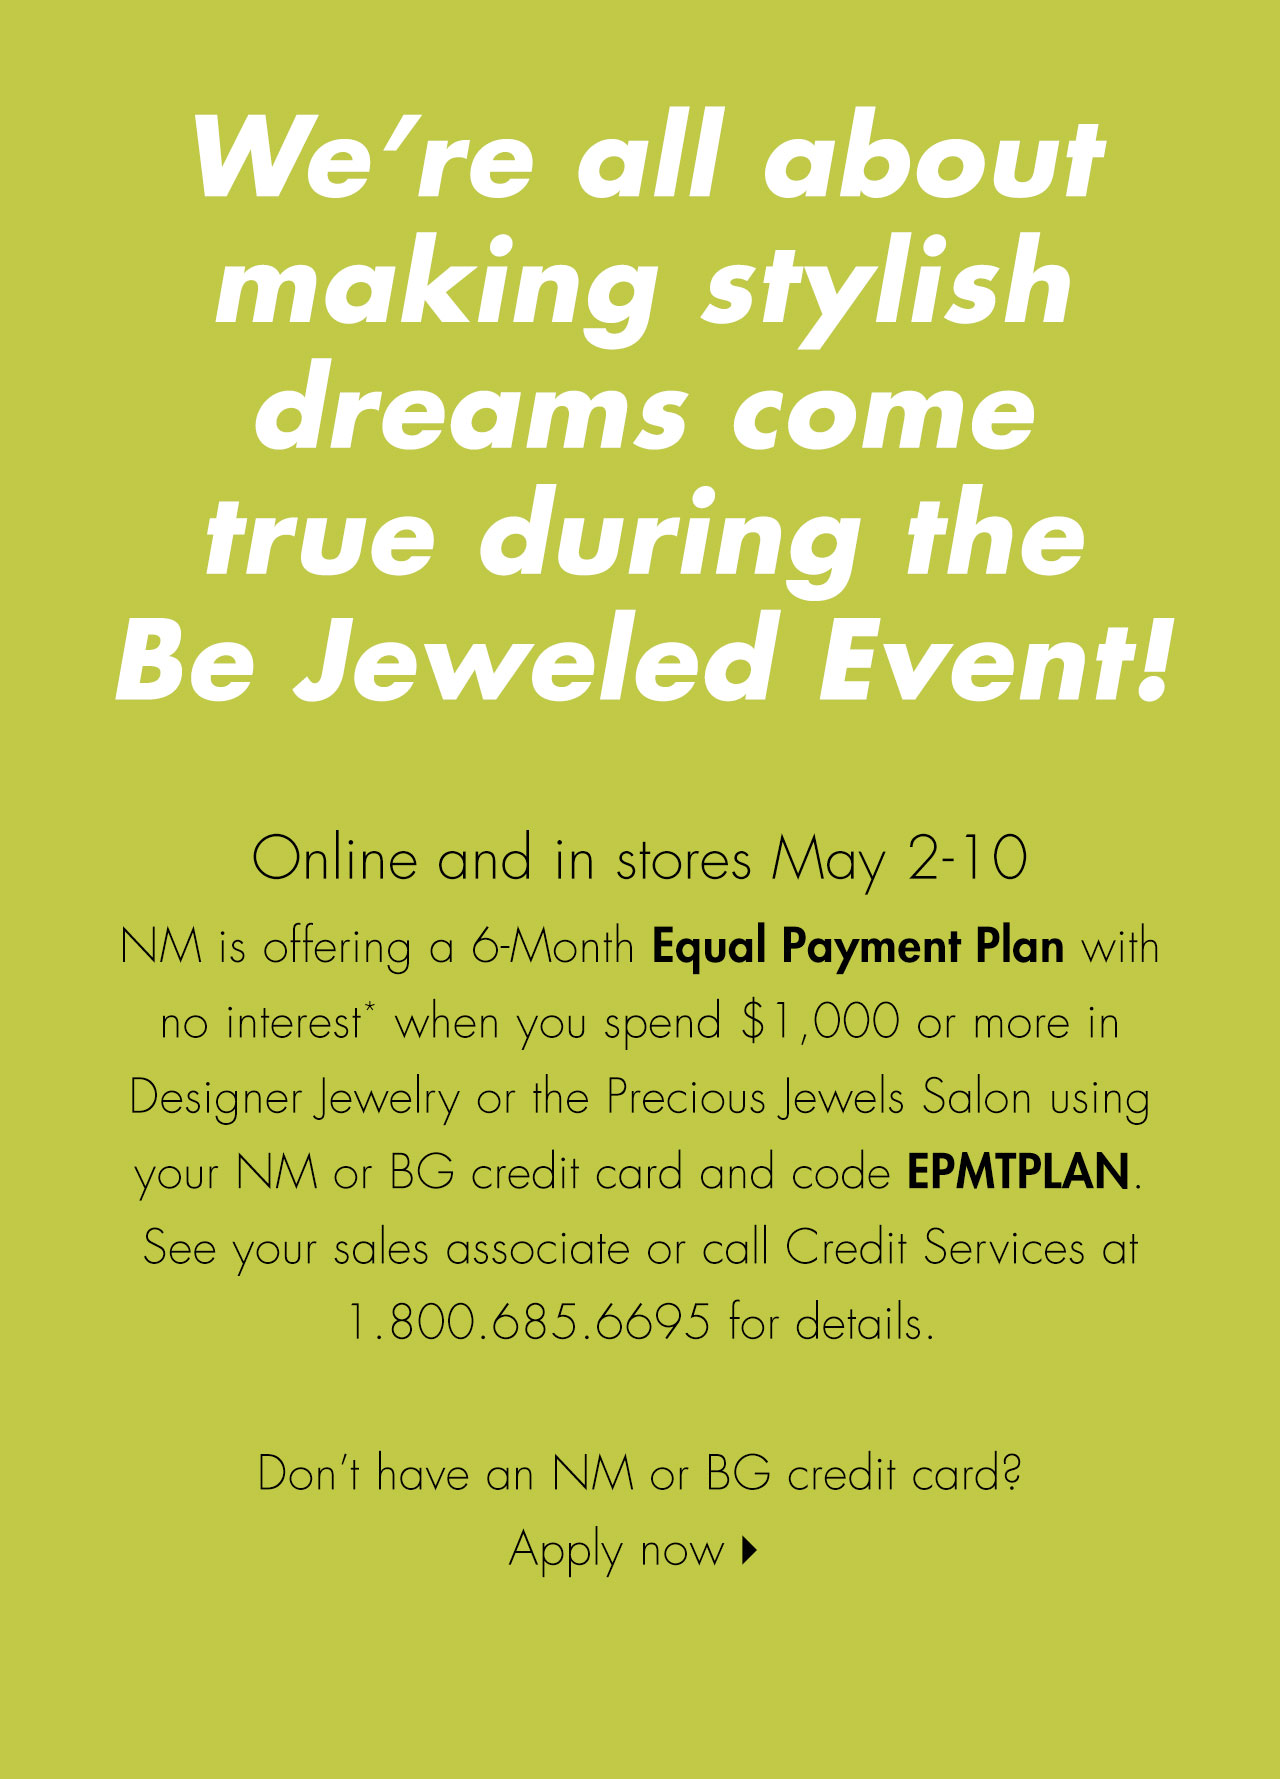 Equal Payment Plans at Neiman Marcus